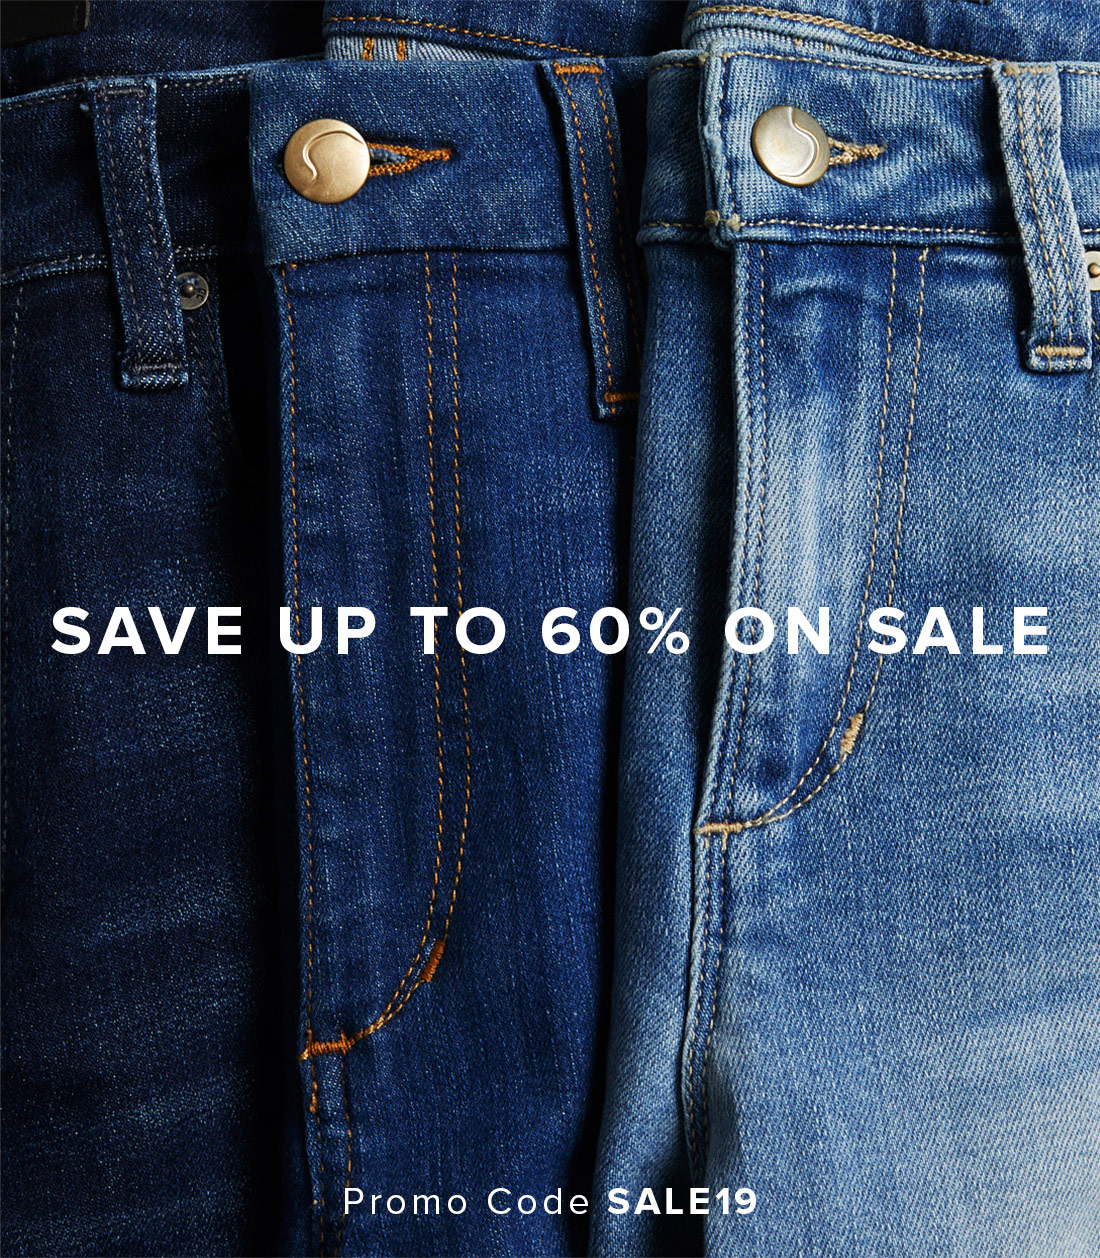 Save Up To 60% On Sale - Promo Code SALE19